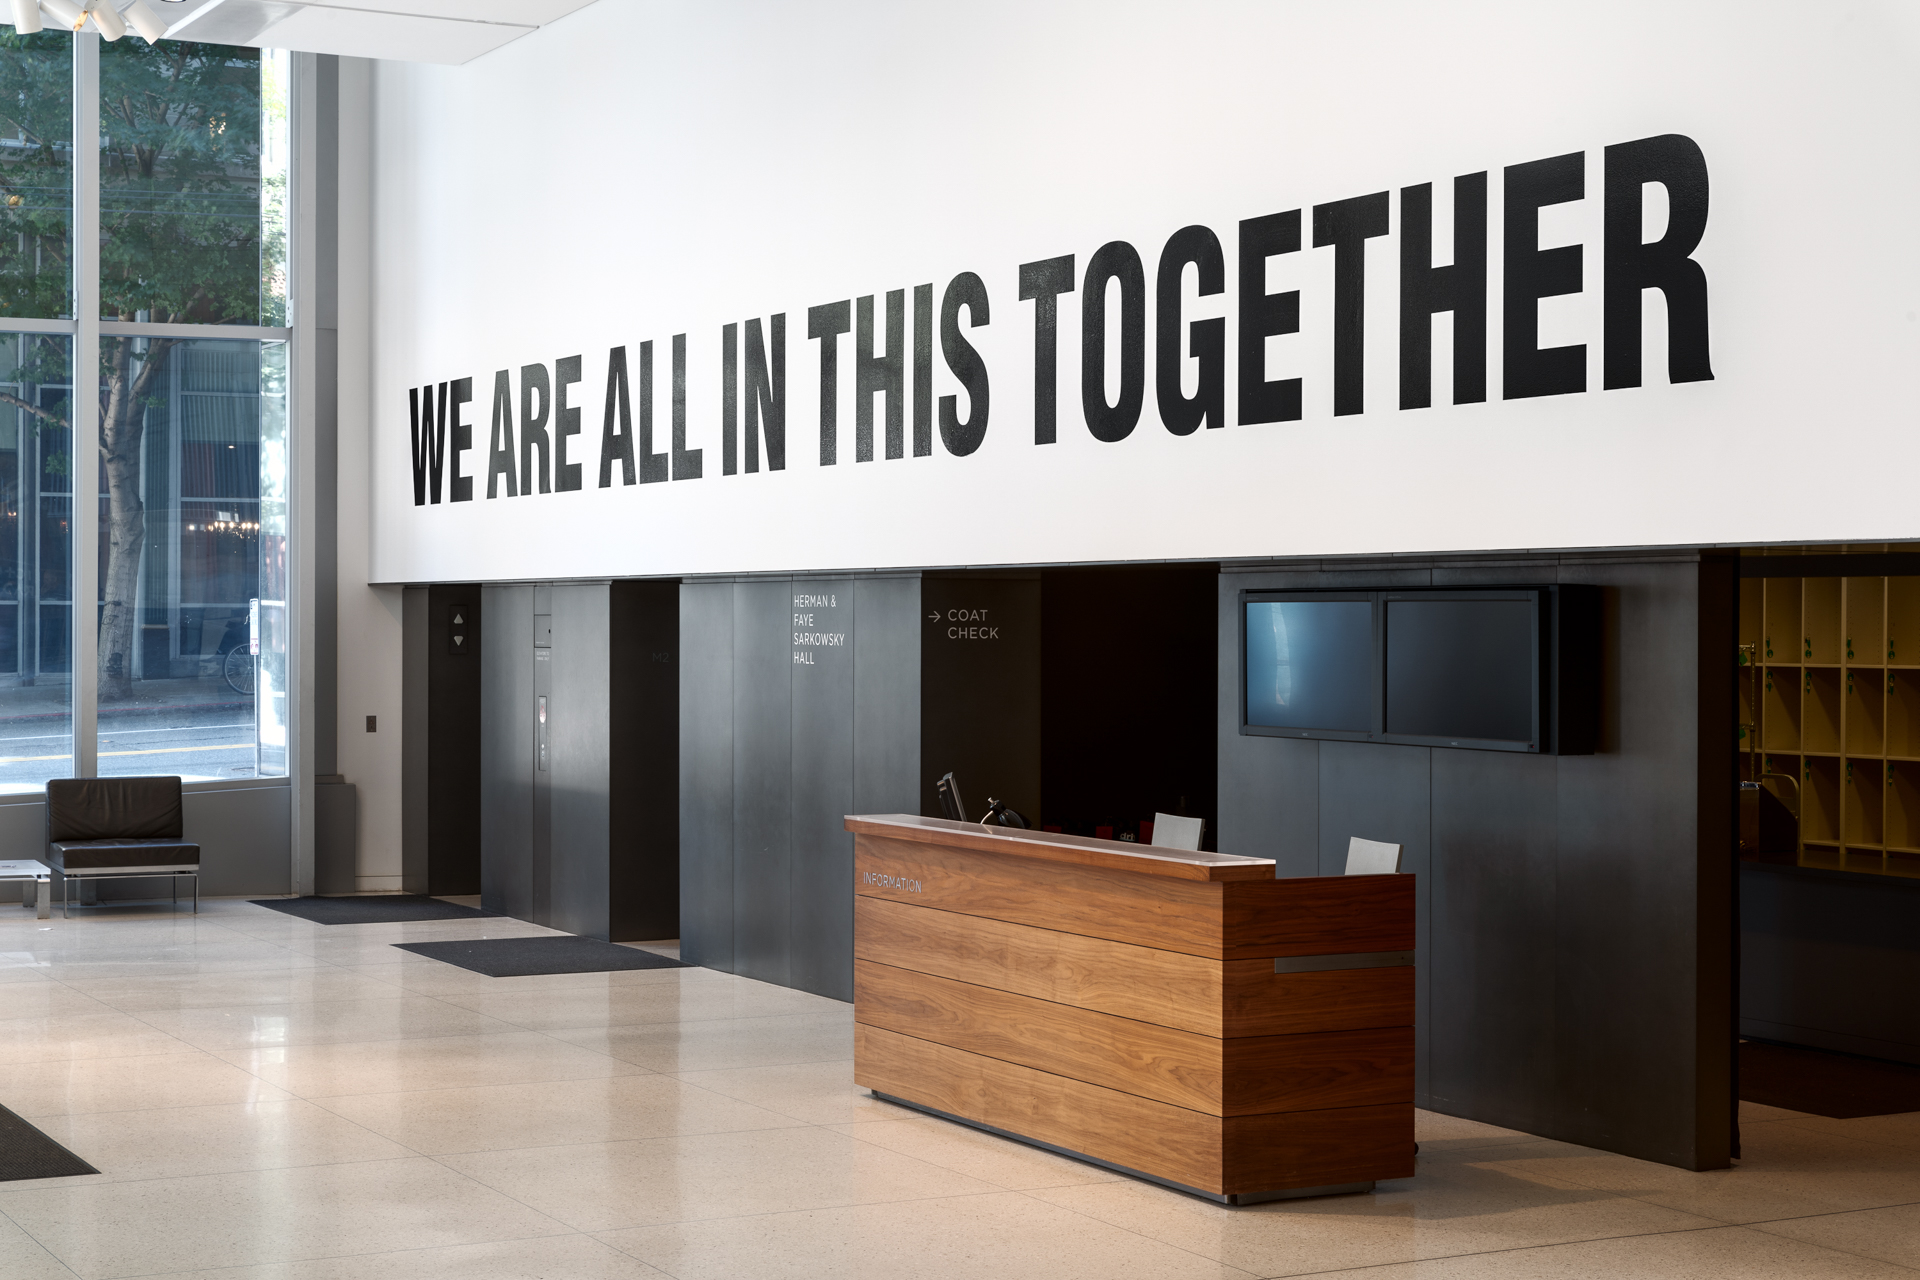 Object of the Week: We Are All in This Together